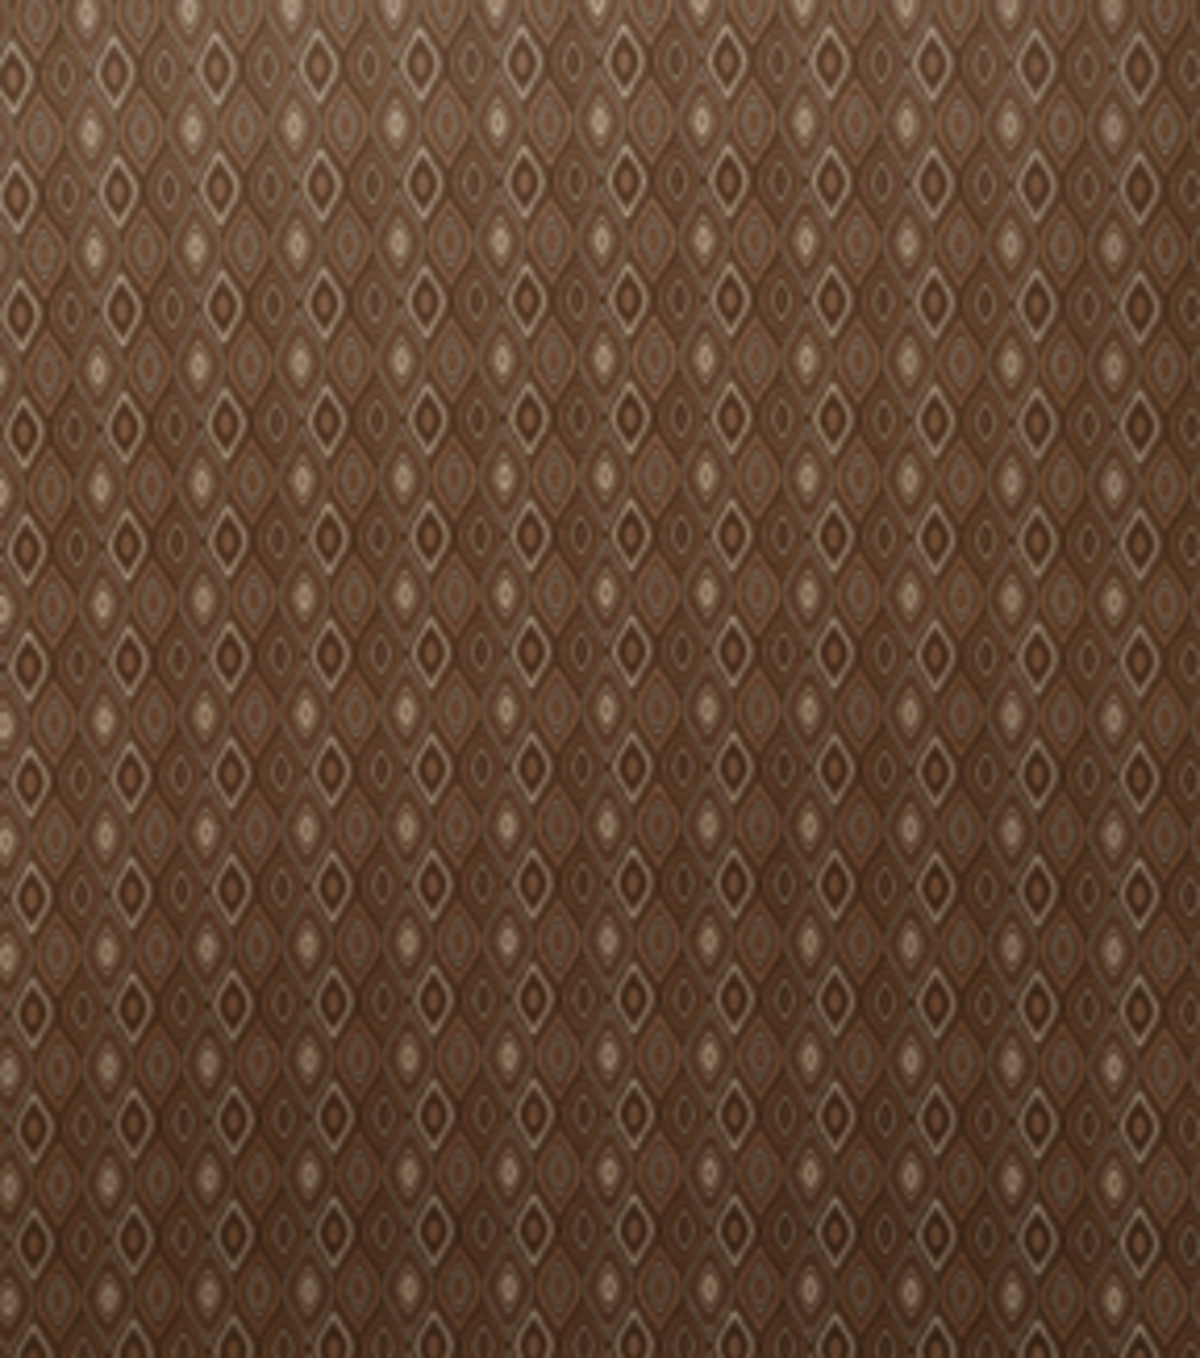 Home Decor 8\u0022x8\u0022 Fabric Swatch-Print Fabric Eaton Square Cloudy Chocolate